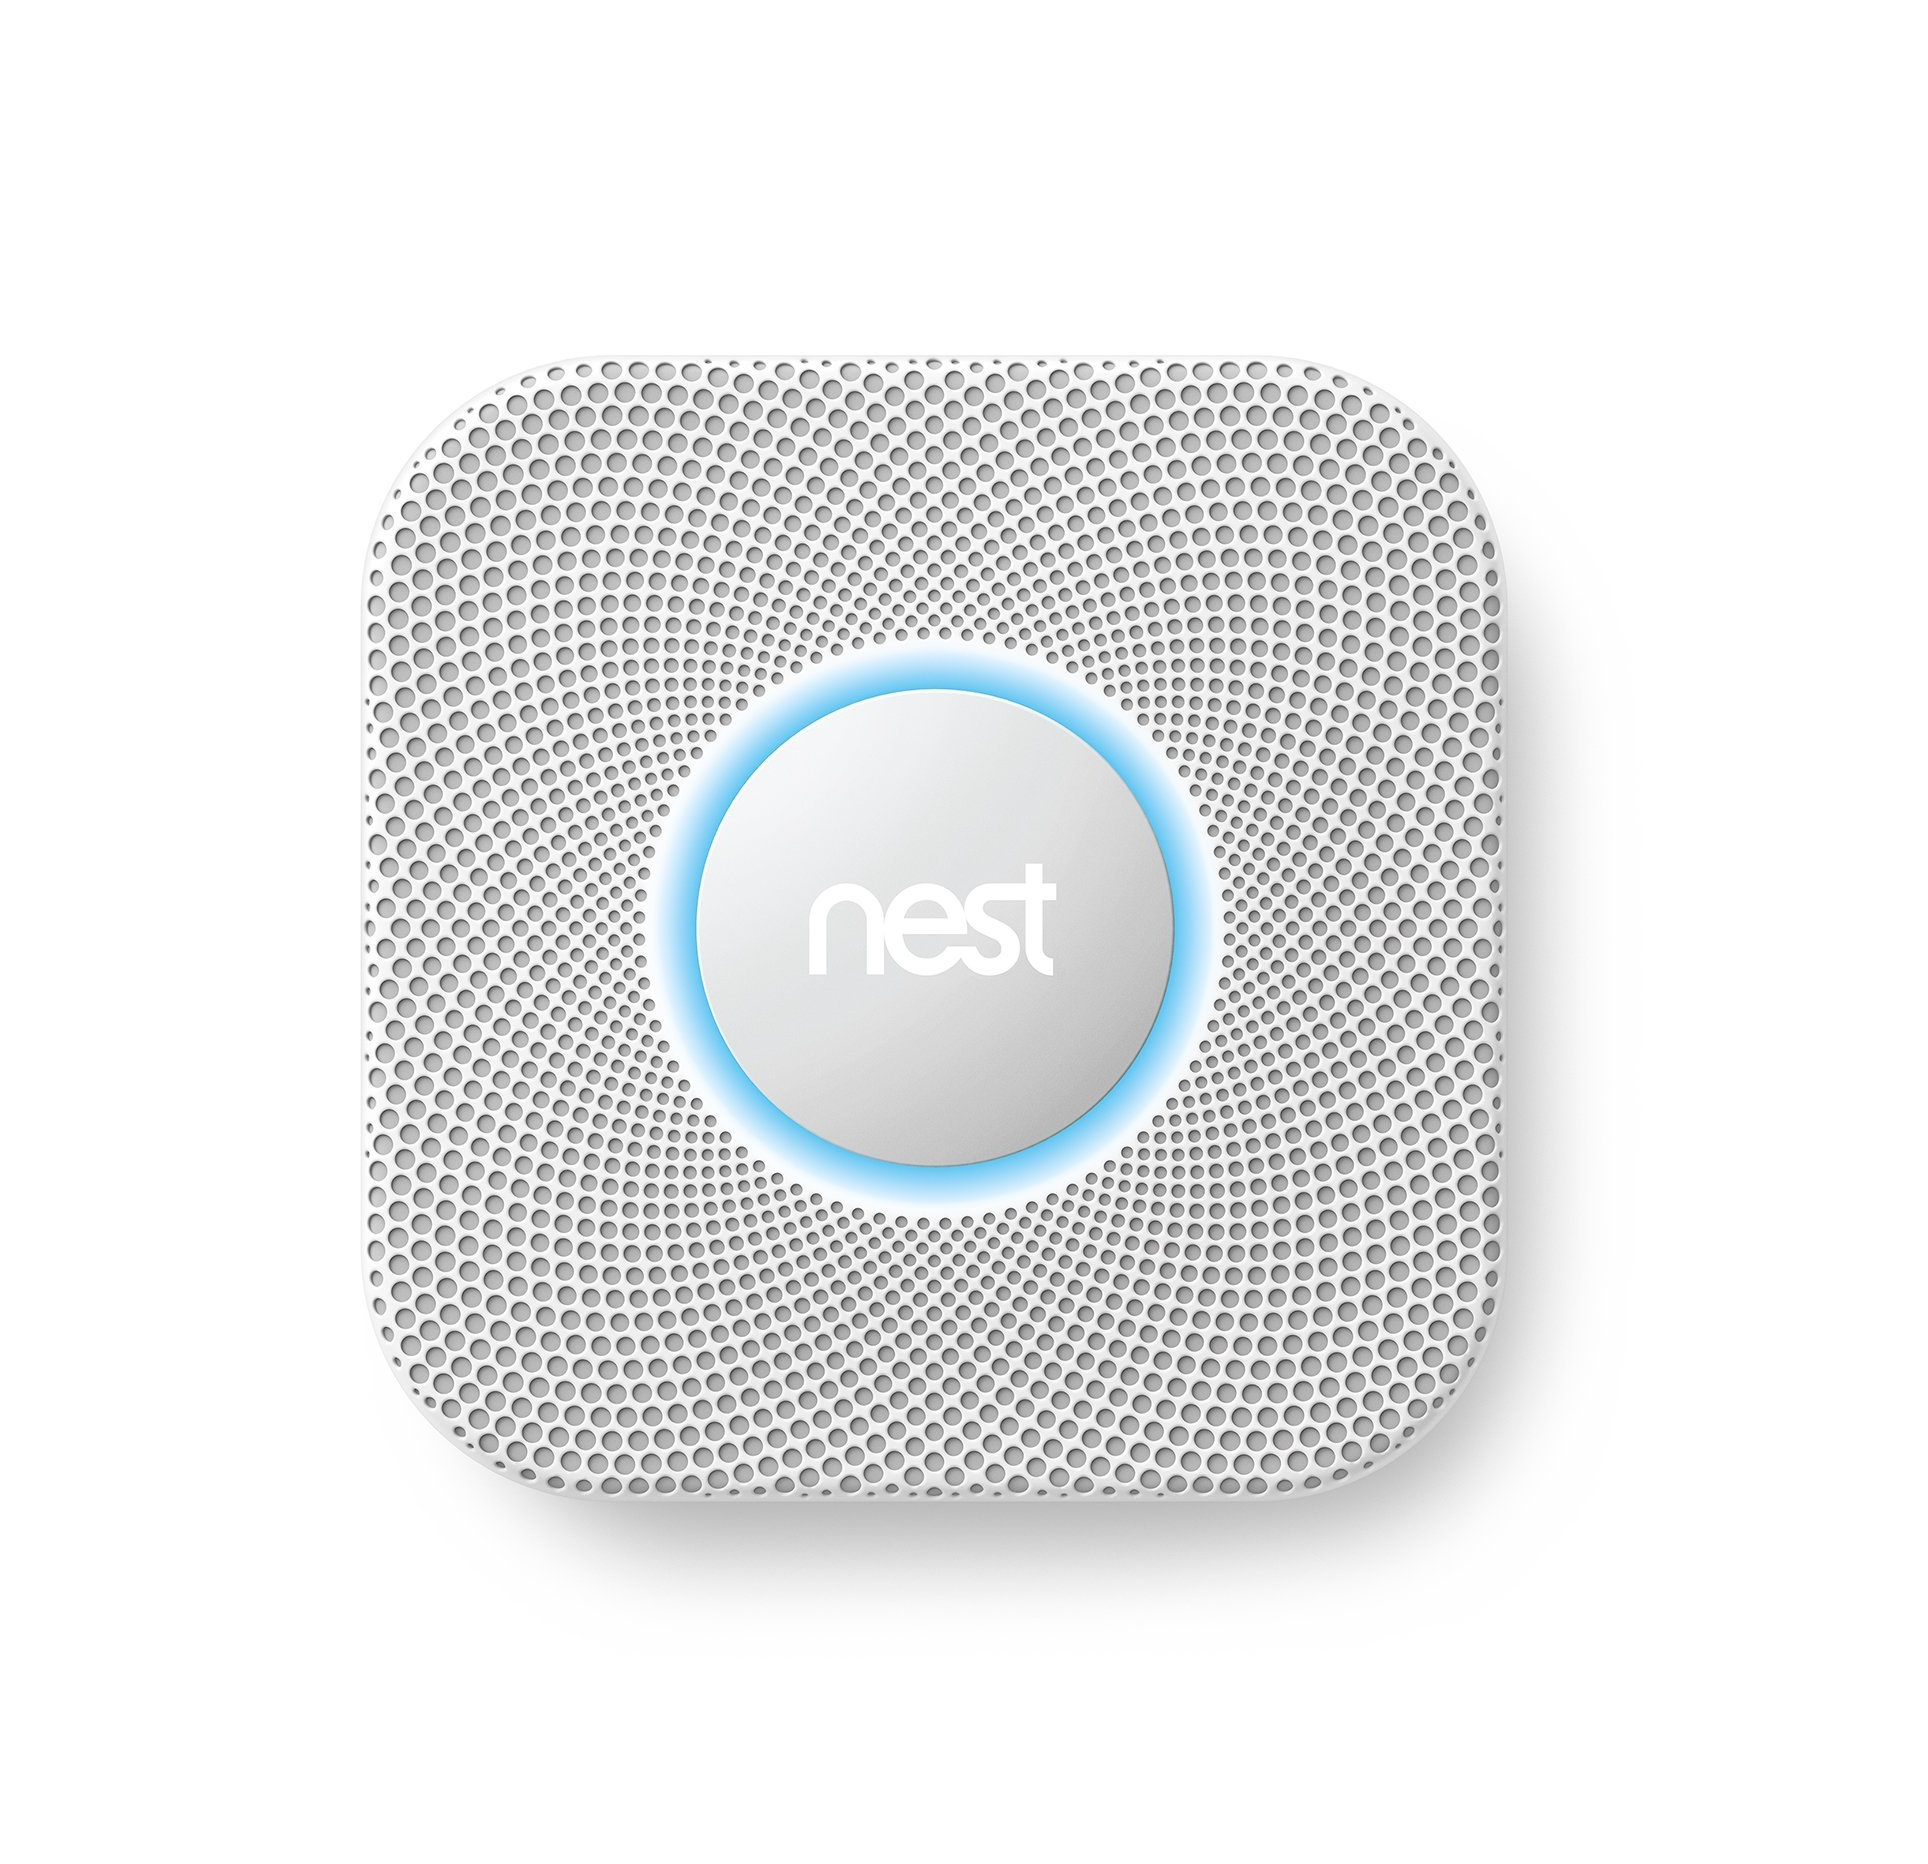 nest protect smoke plus carbon monoxide iot internet of things. Black Bedroom Furniture Sets. Home Design Ideas